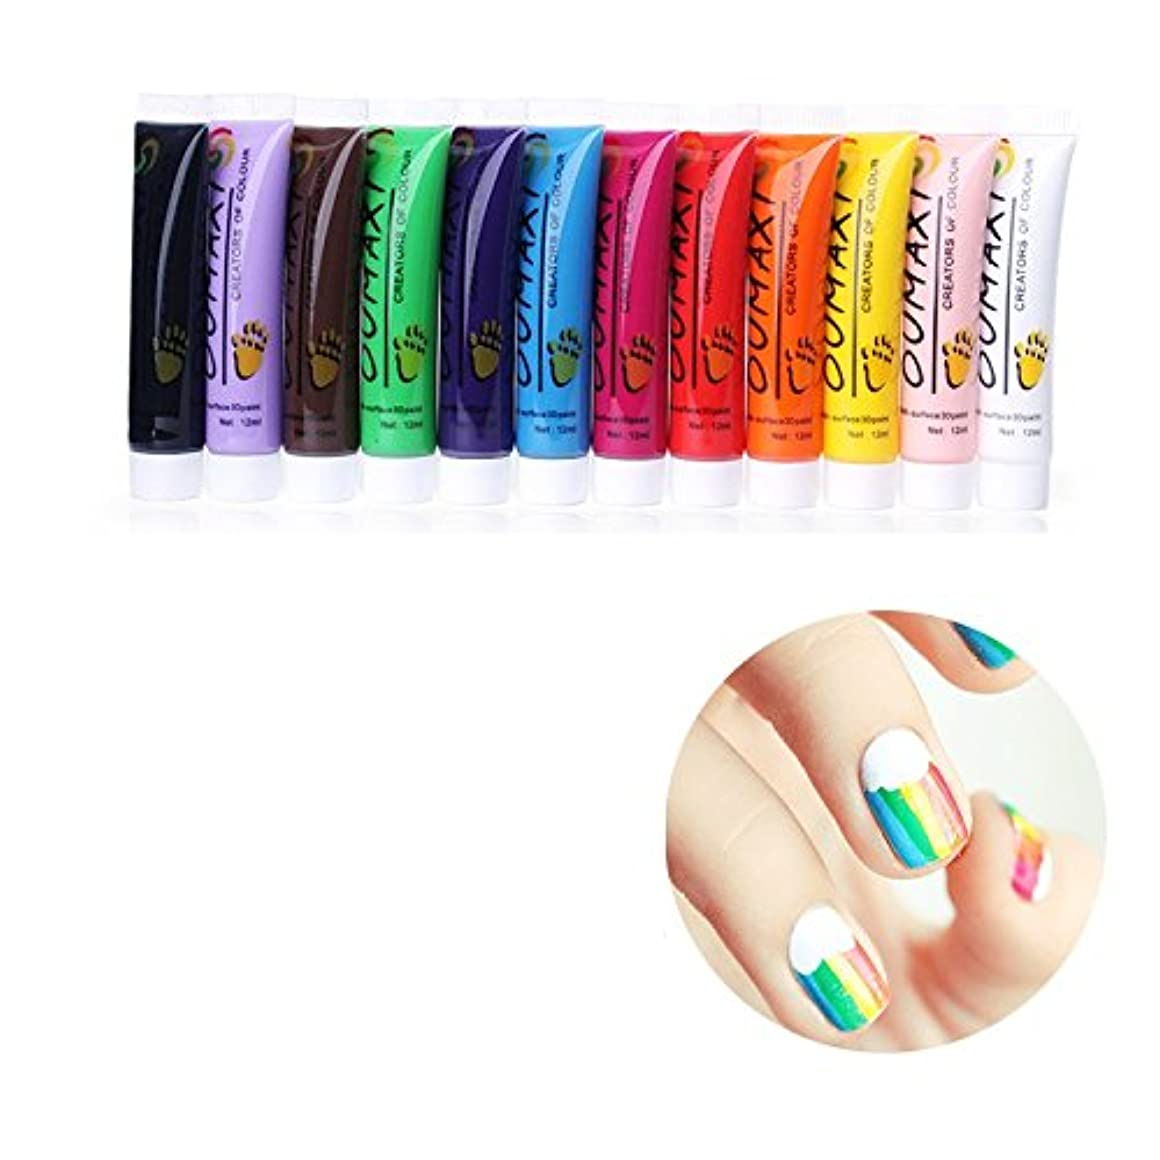 適格調和のとれたランク12Pc Colors Nail Art Pen 3D Painting Draw Paint Tube Pigment Acrylic Kits Decorations UV Gel Draw Design DIY Pencil...